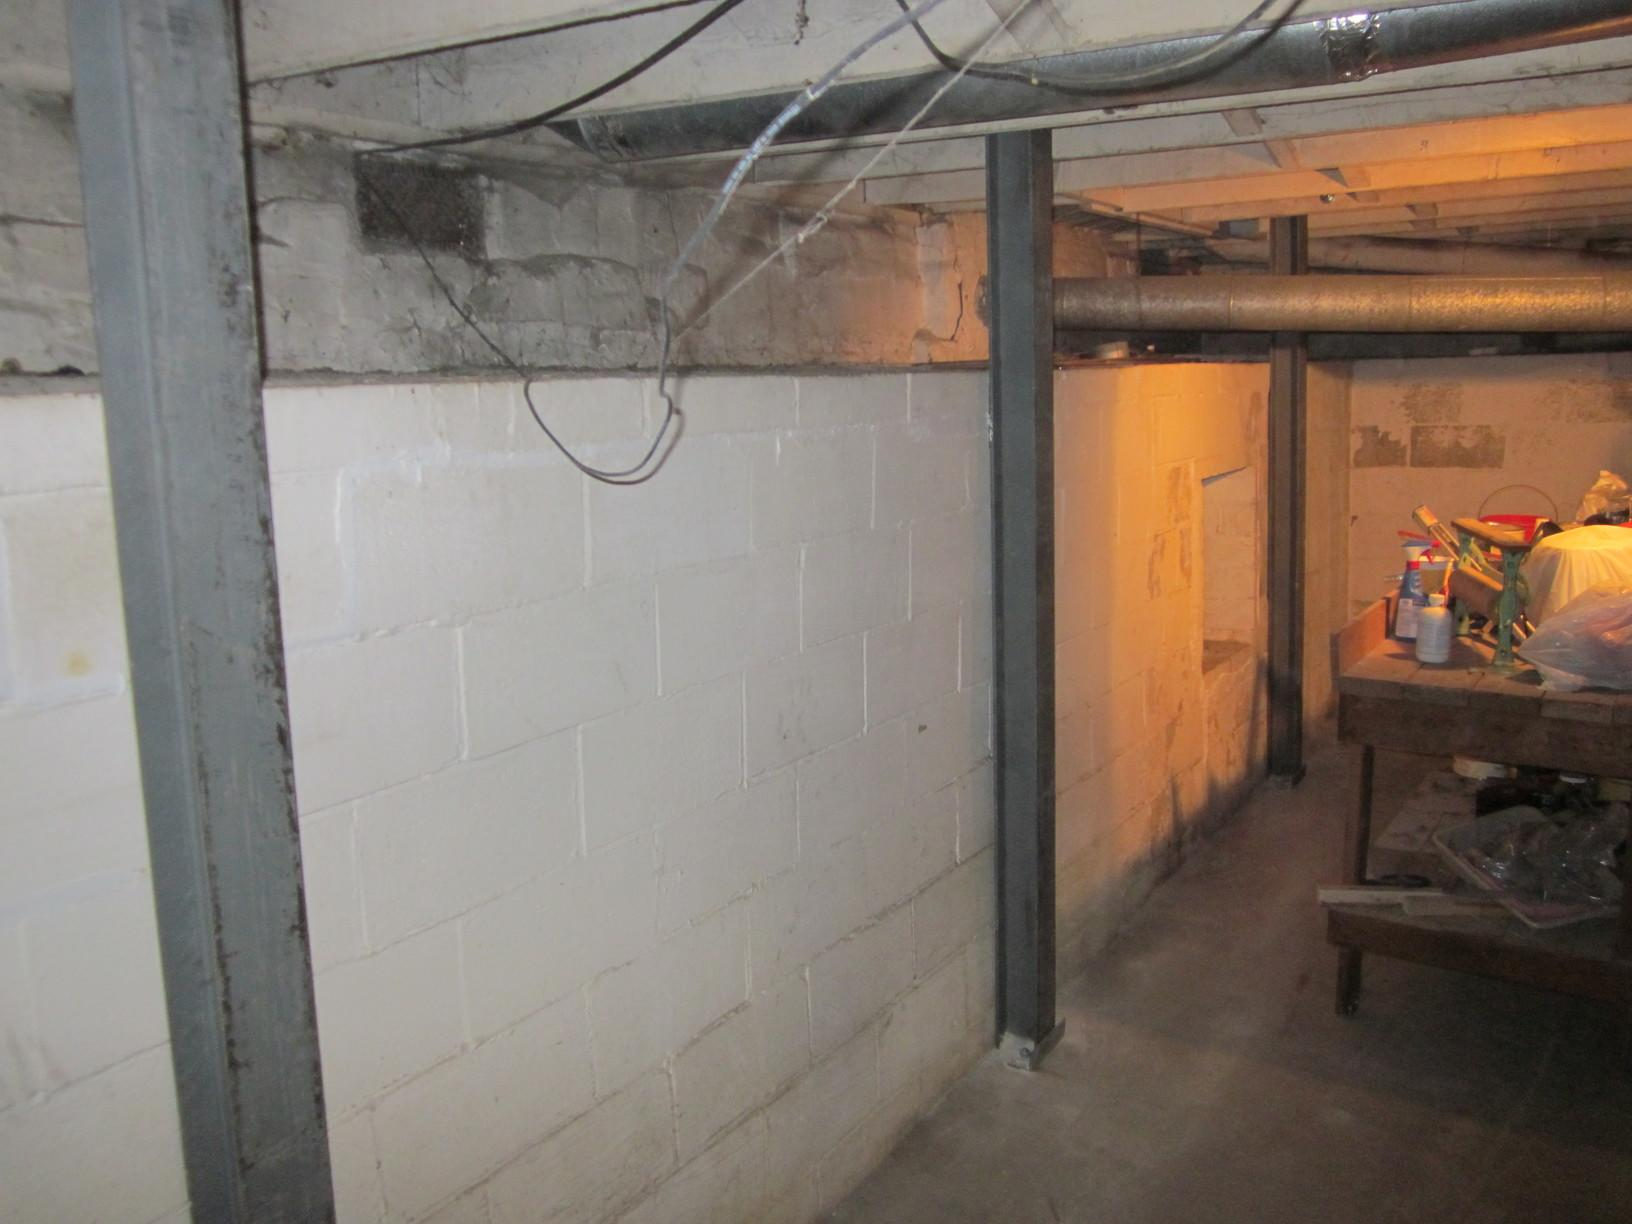 Lexington, KY Basement Wall Stabilized by PowerBraces and Cracks Repaired - After Photo